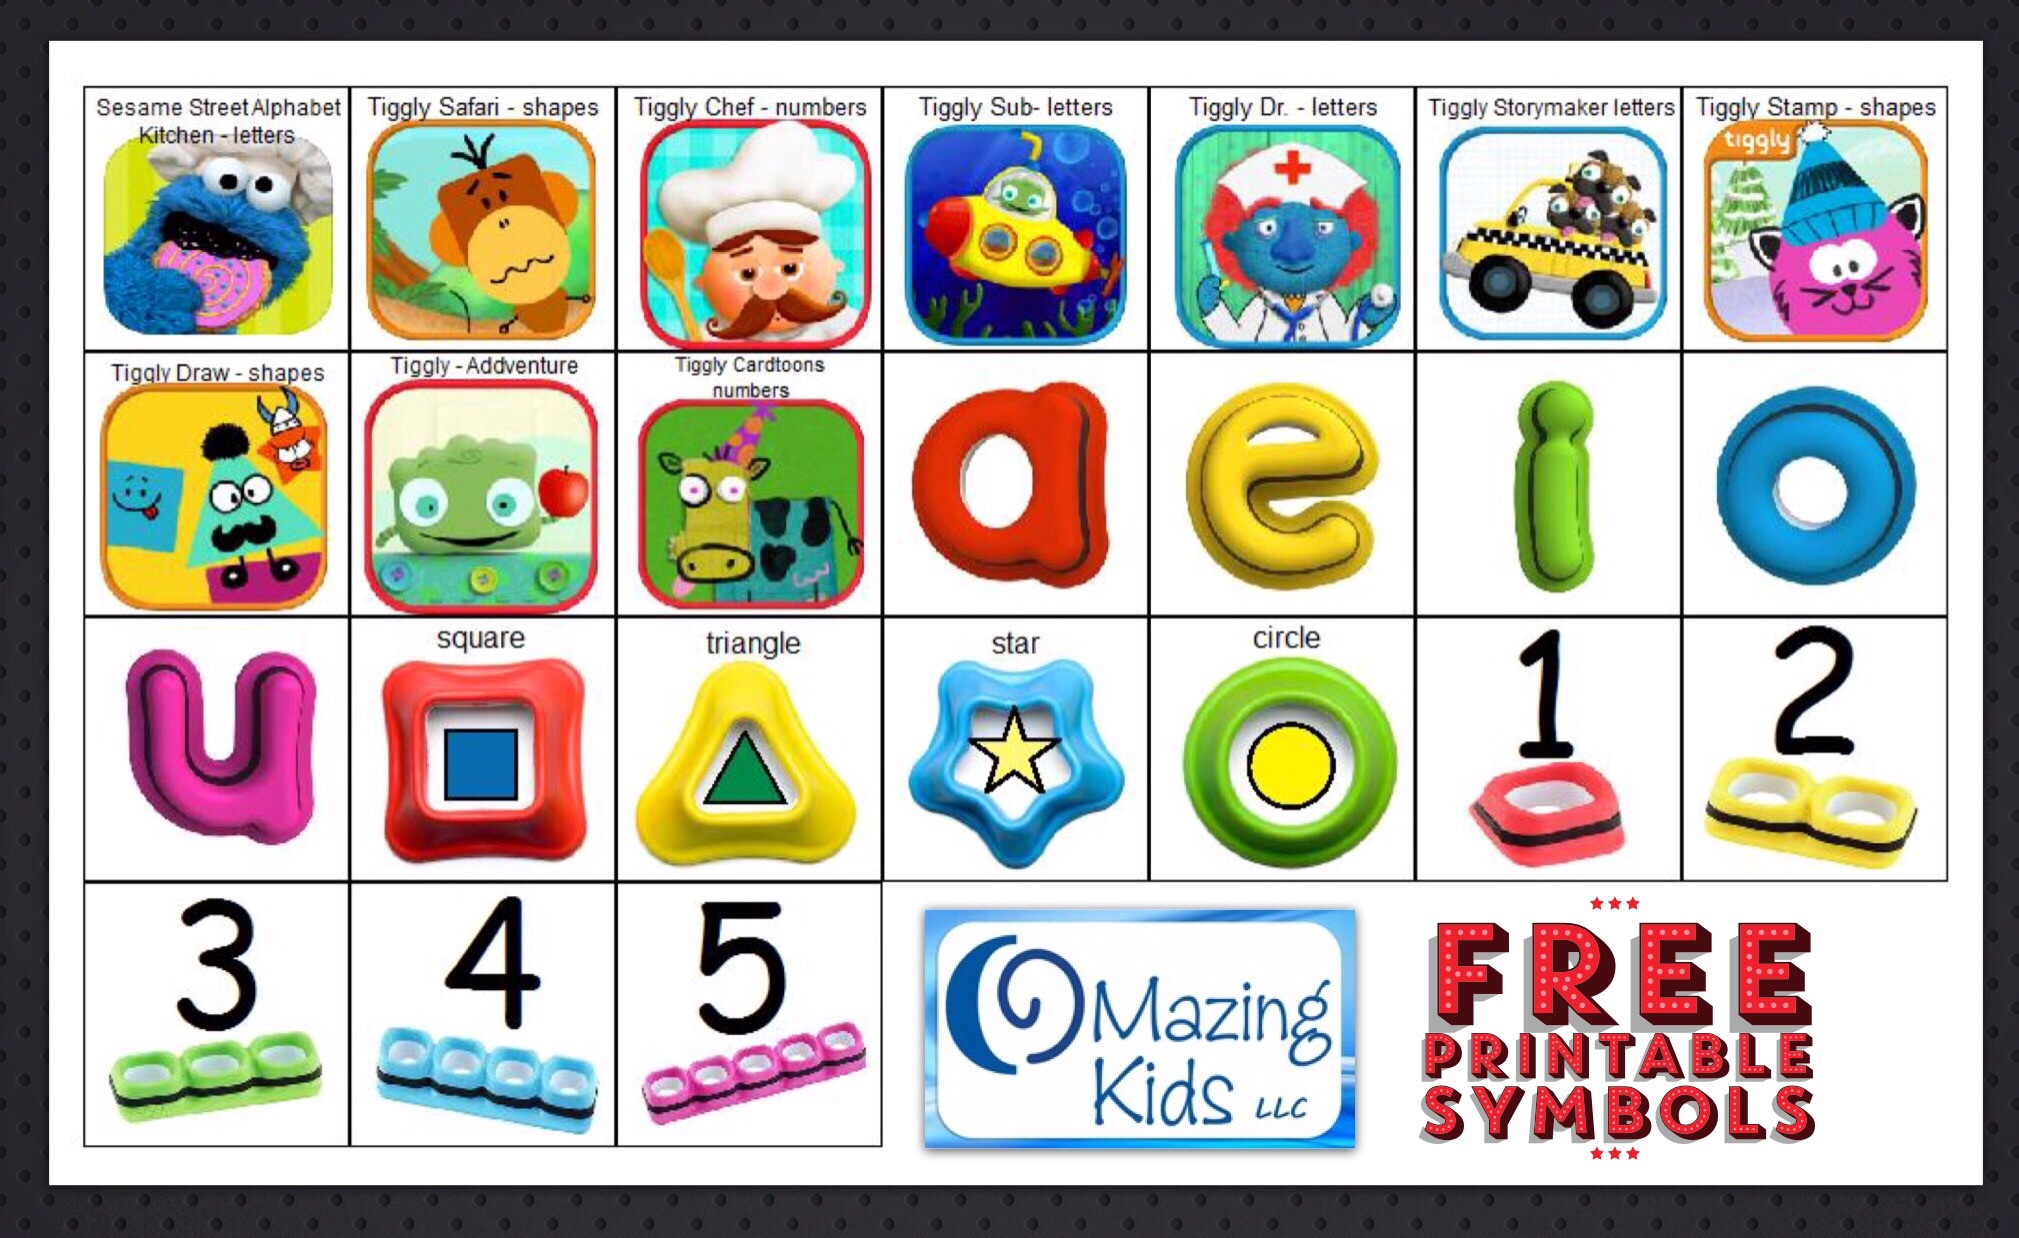 Free Printable Symbols For Tiggly Apps Styluses Omazing Kids